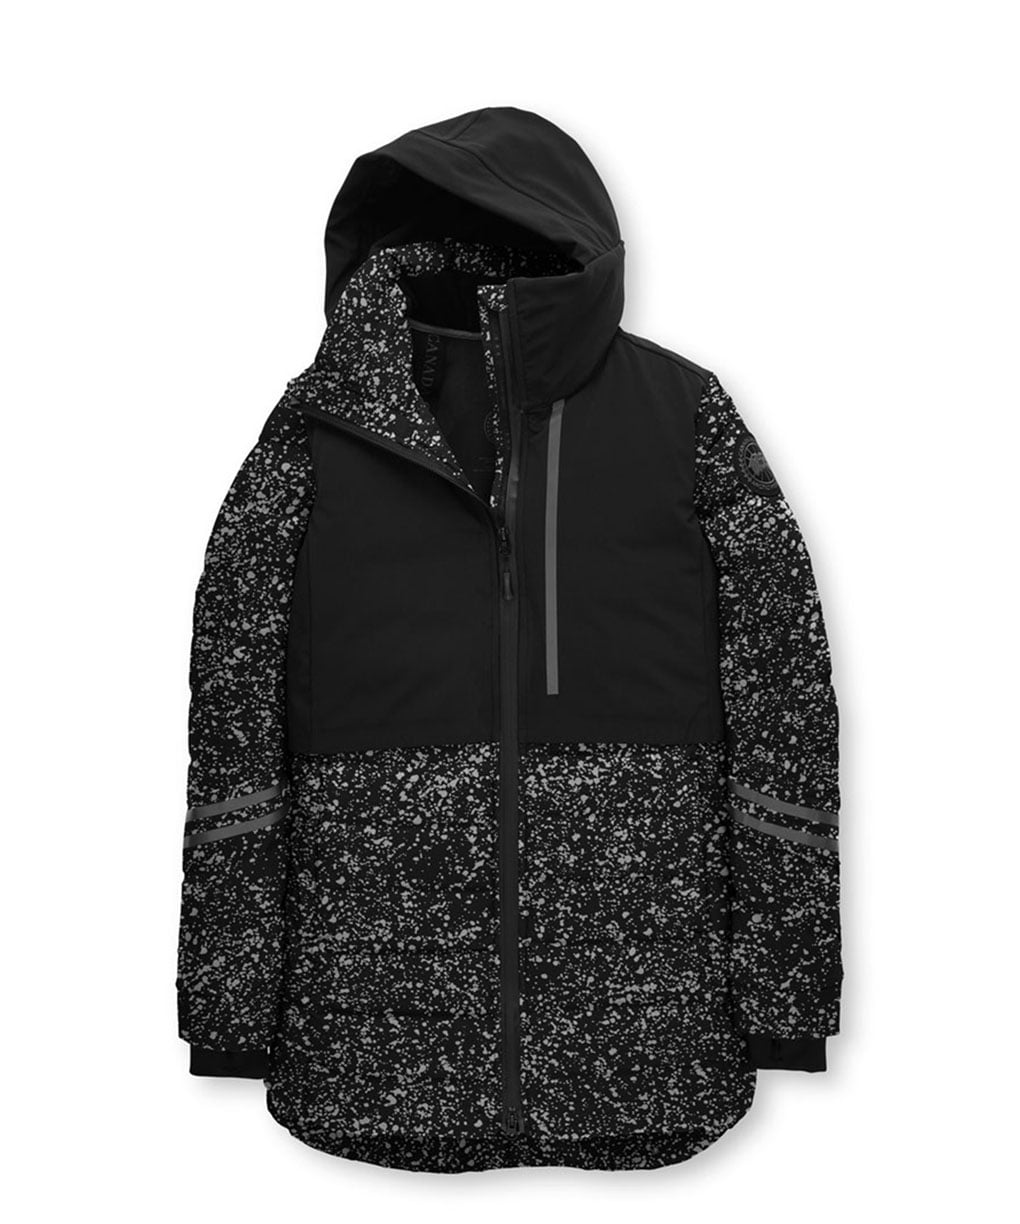 HYBRIDGE CW BOMBER BLACK LABEL REFLECTIVE